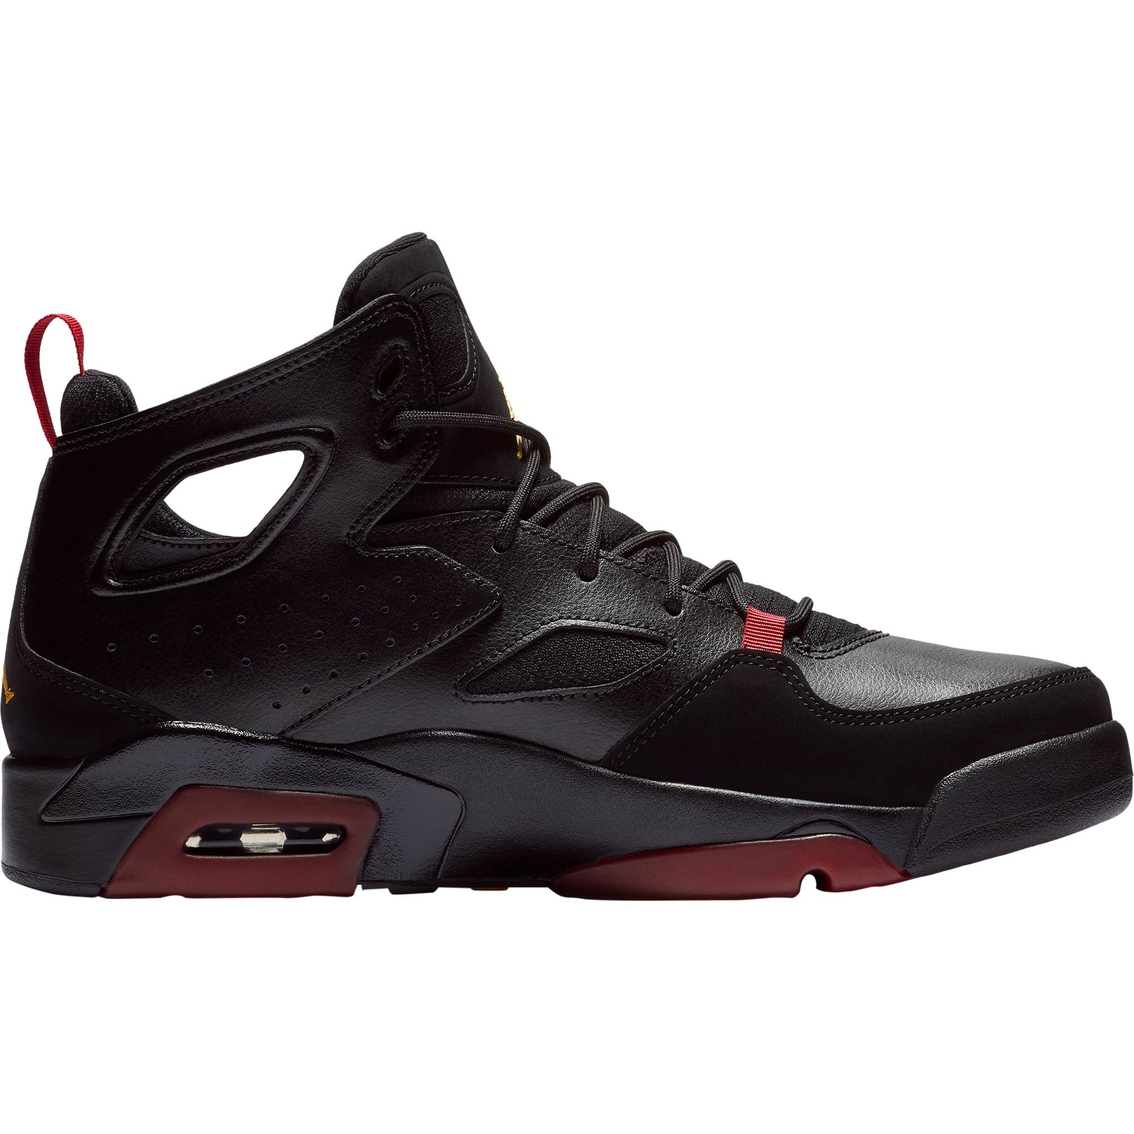 b1b6176a0c6b2a Jordan Men s Flight Club 91 Basketball Shoes